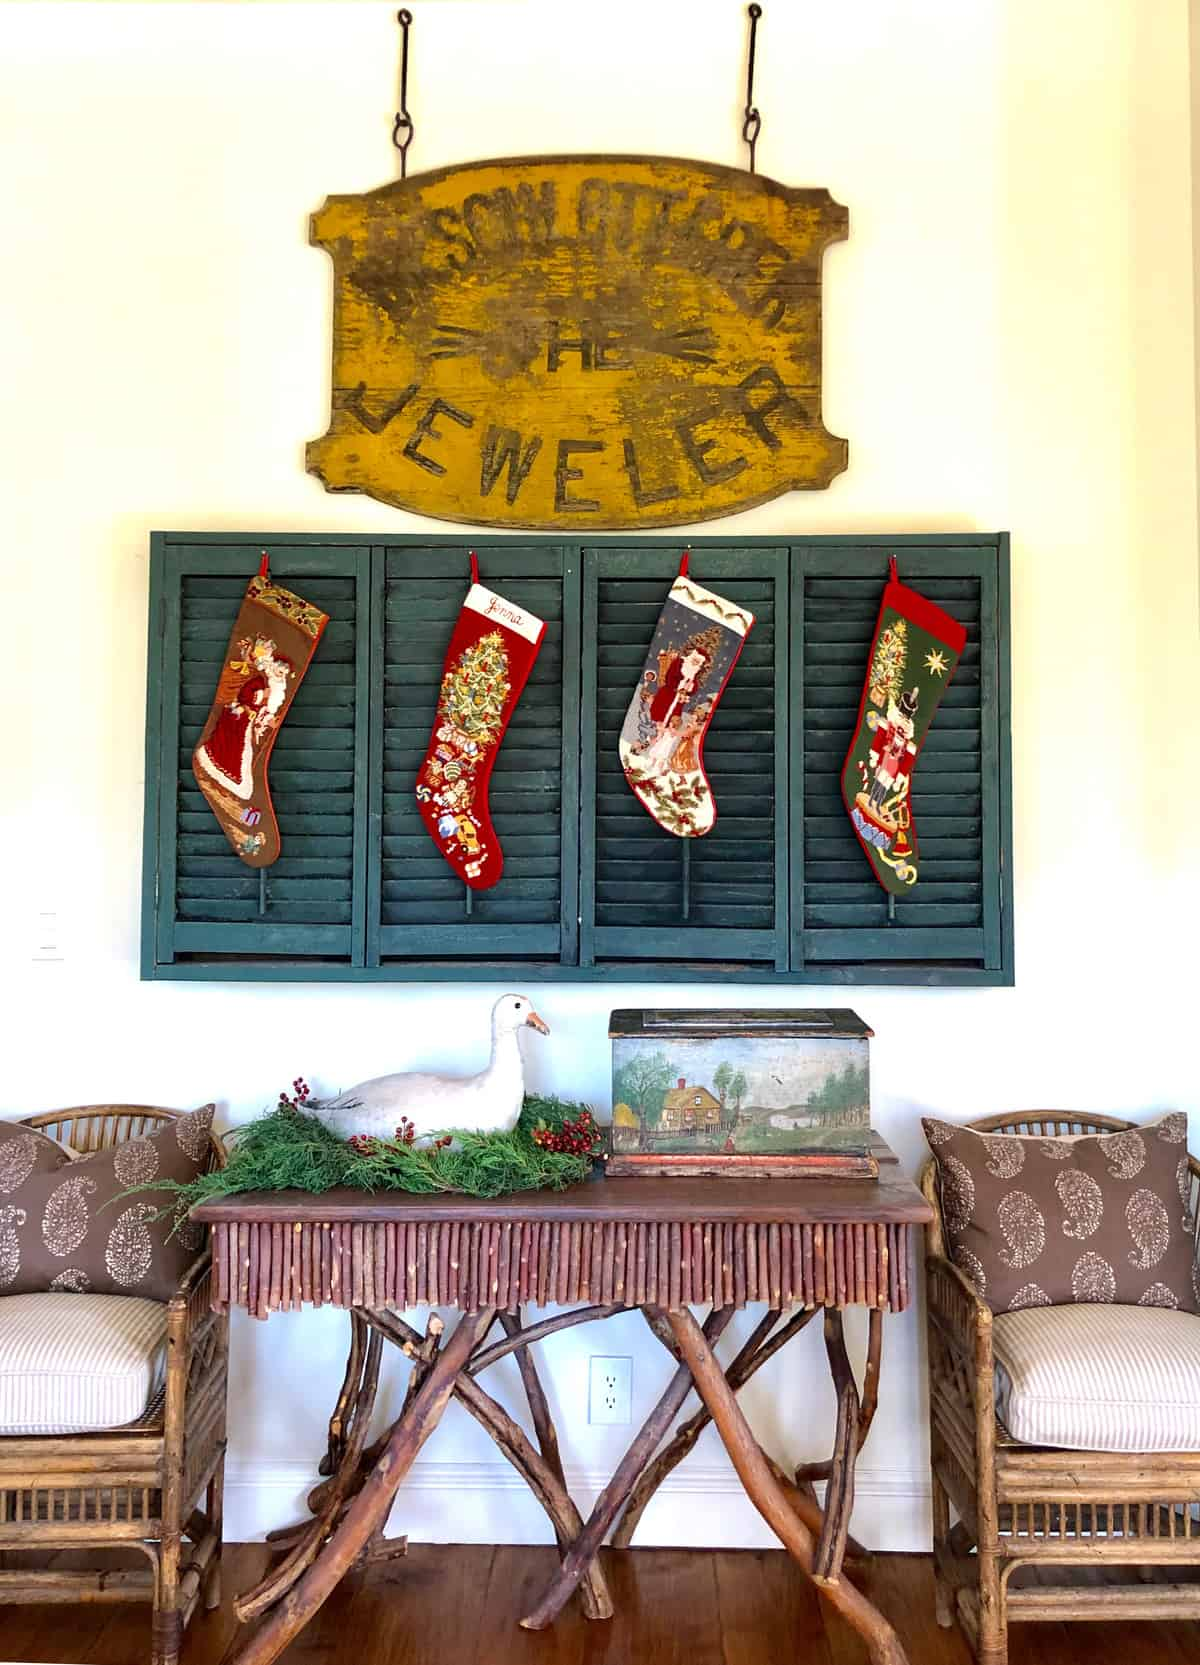 needlepoint stockings on old shutters